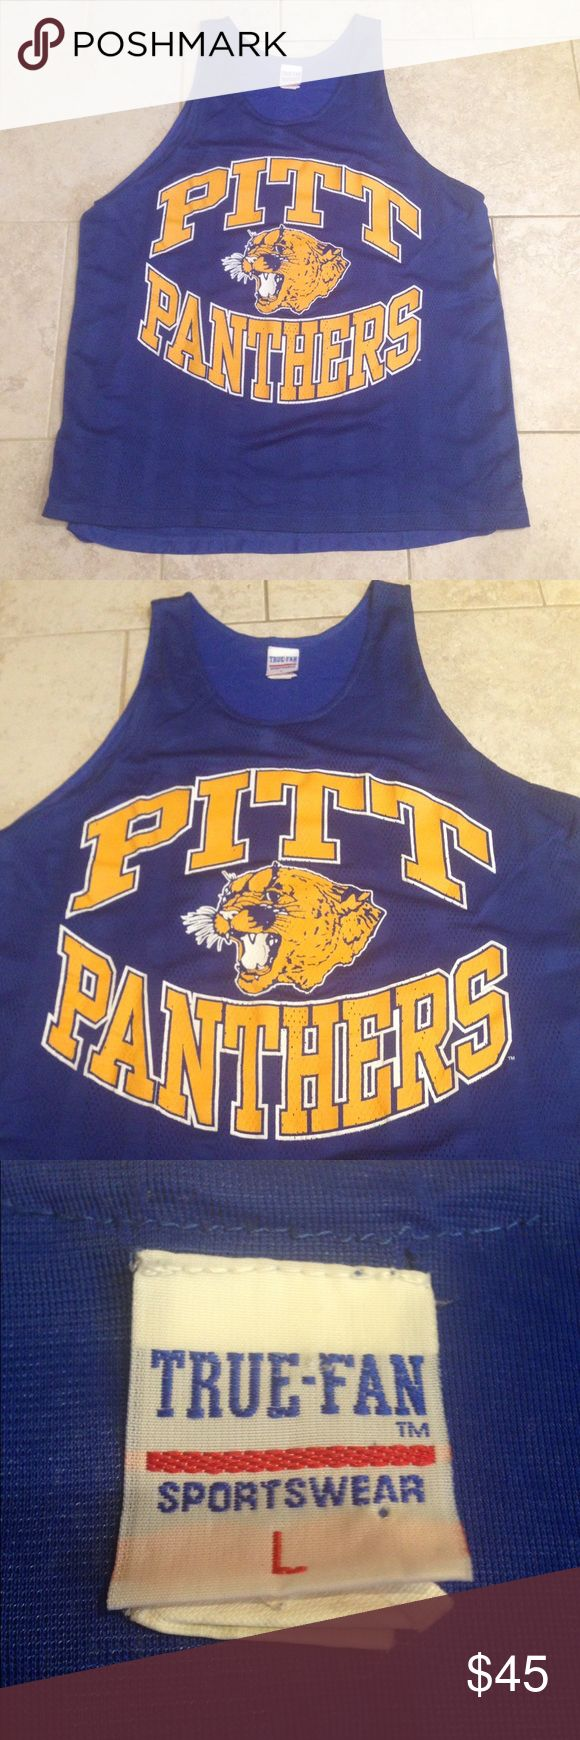 Vintage PITT Panthers Basketball Jersey Very rare and in great condition! Has been in plastic for a very long time! Practically looks and smells brand new. This jersey has two layers like the old school jerseys used to have. I'm not sure the era on this particular style but I'm going to guess the 80's. Size Large in Men's. Tops Tank Tops